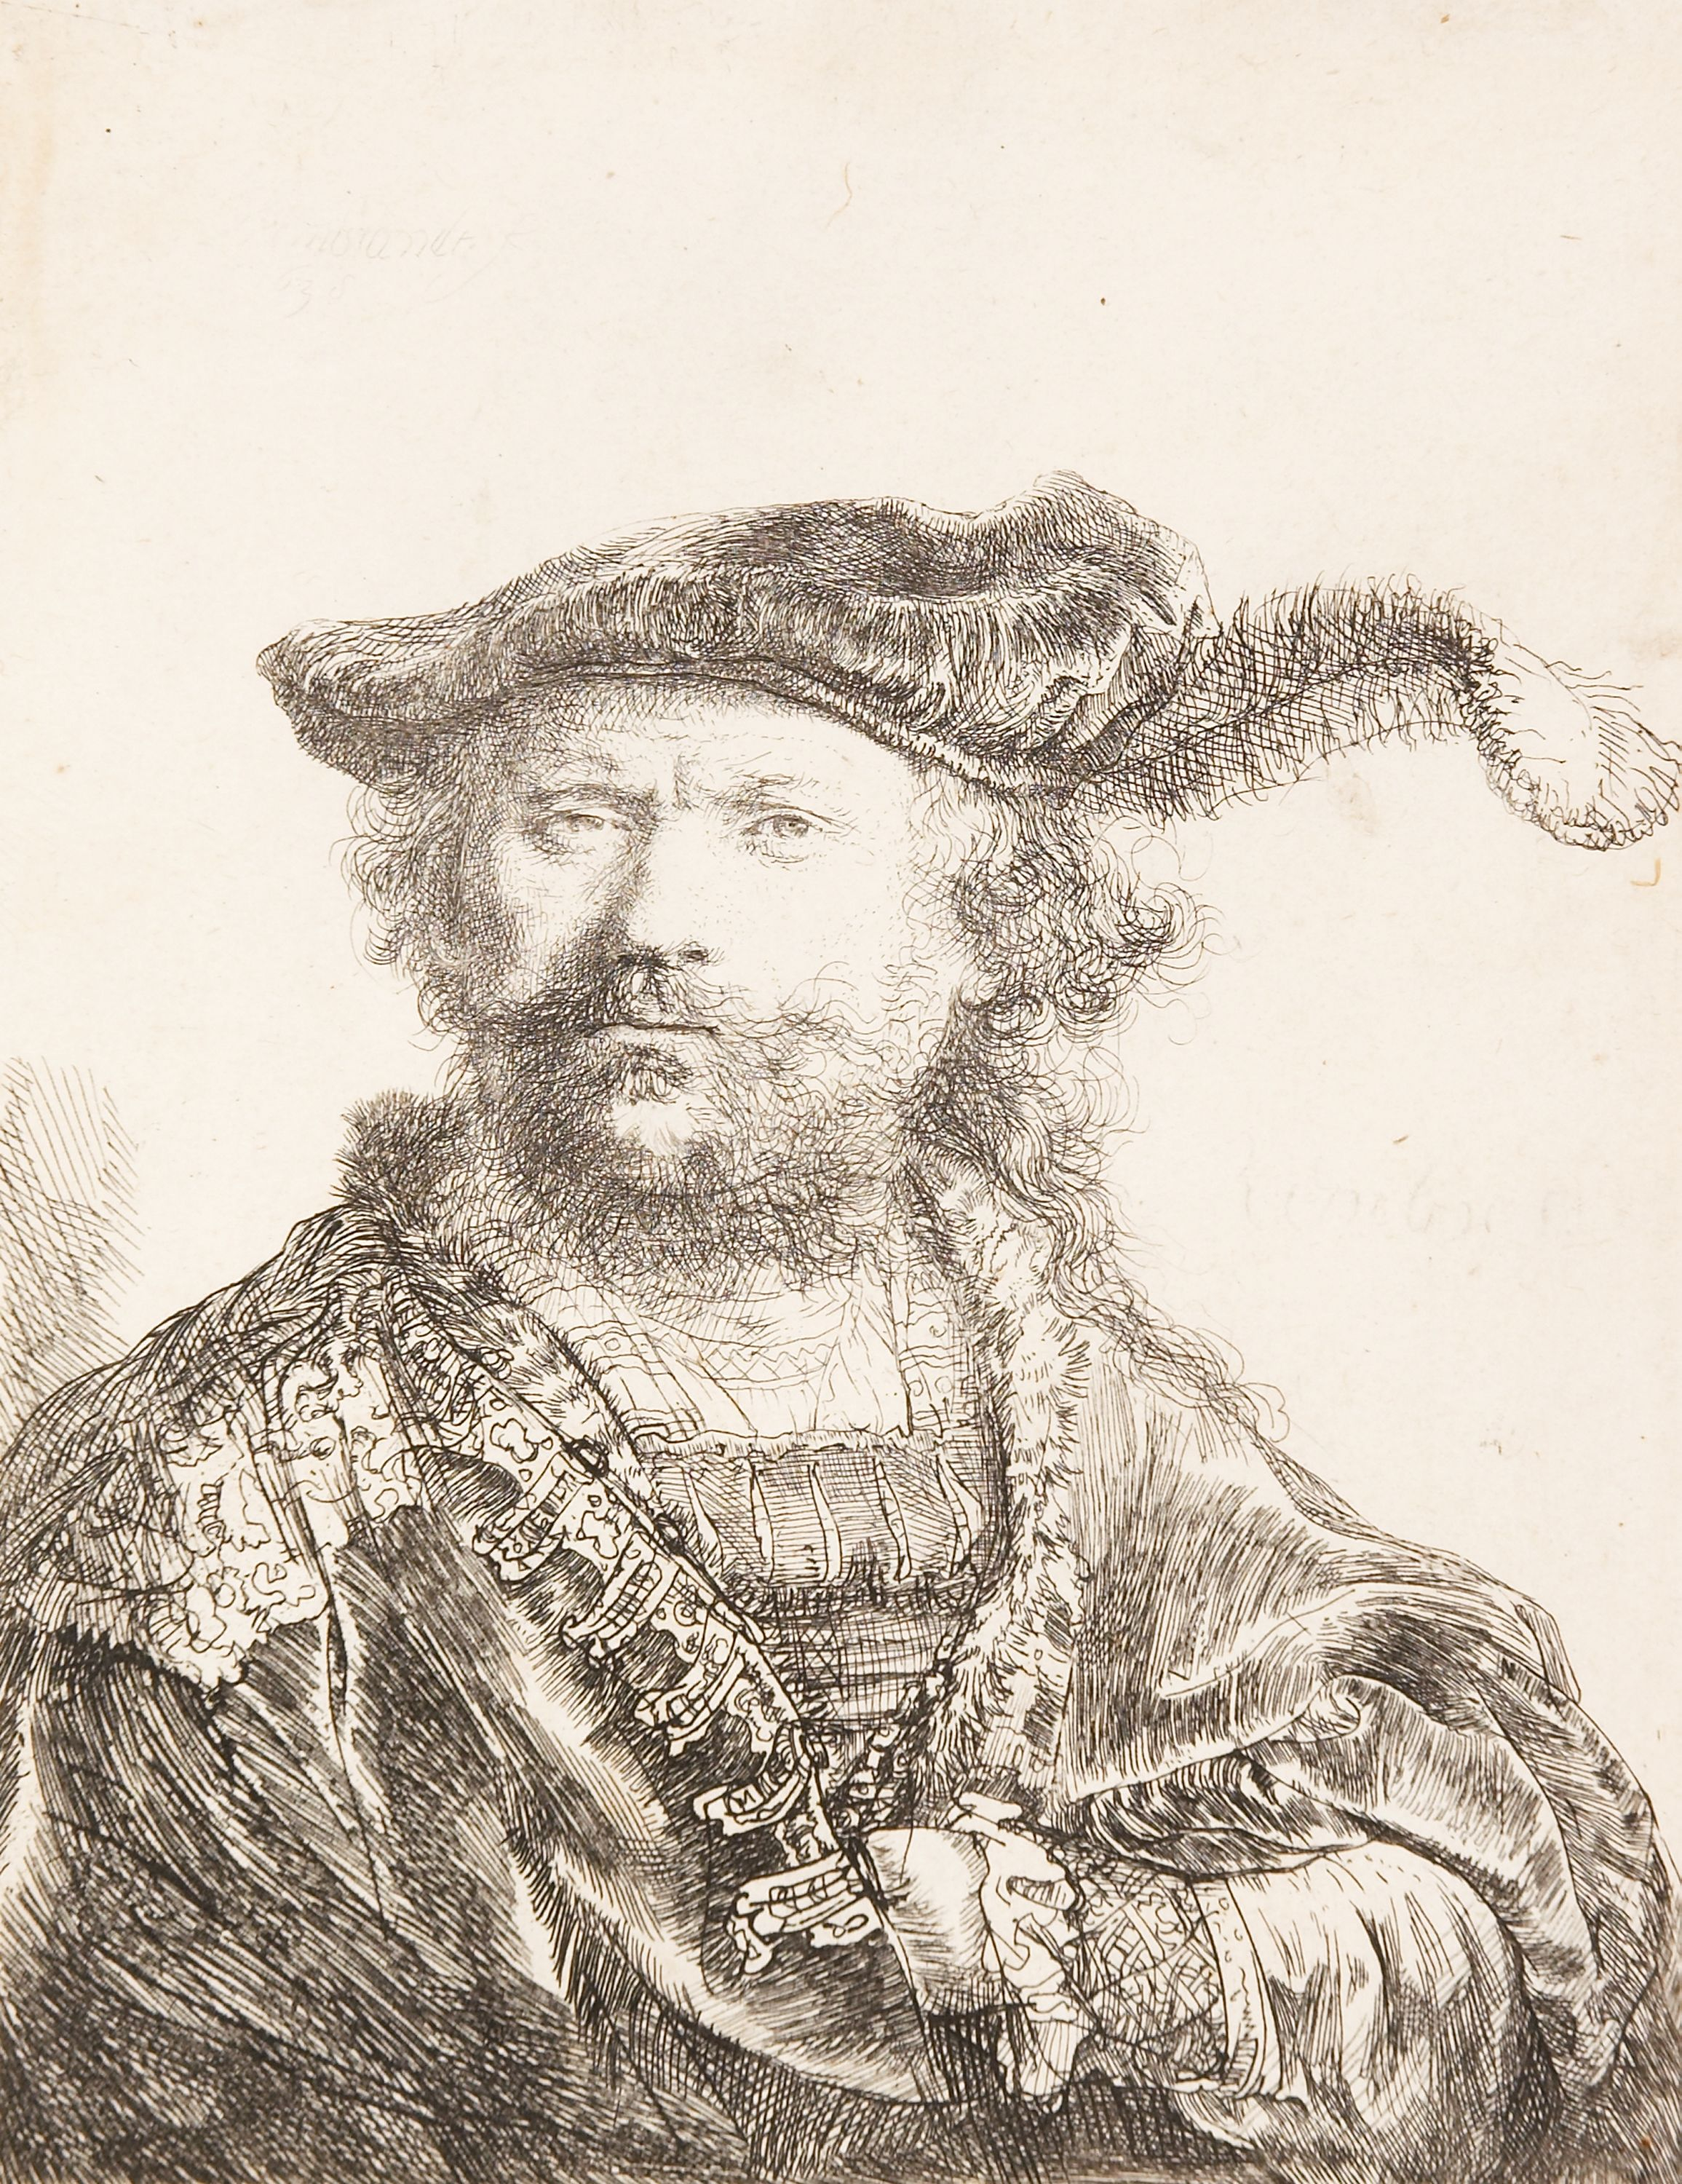 """Self-Portrait in a Velvet Cap with Plume"" Rembrandt van Rijn (Netherlands, 1606-1669), etching (state 1 or 2 of 2), print. 1957.102."